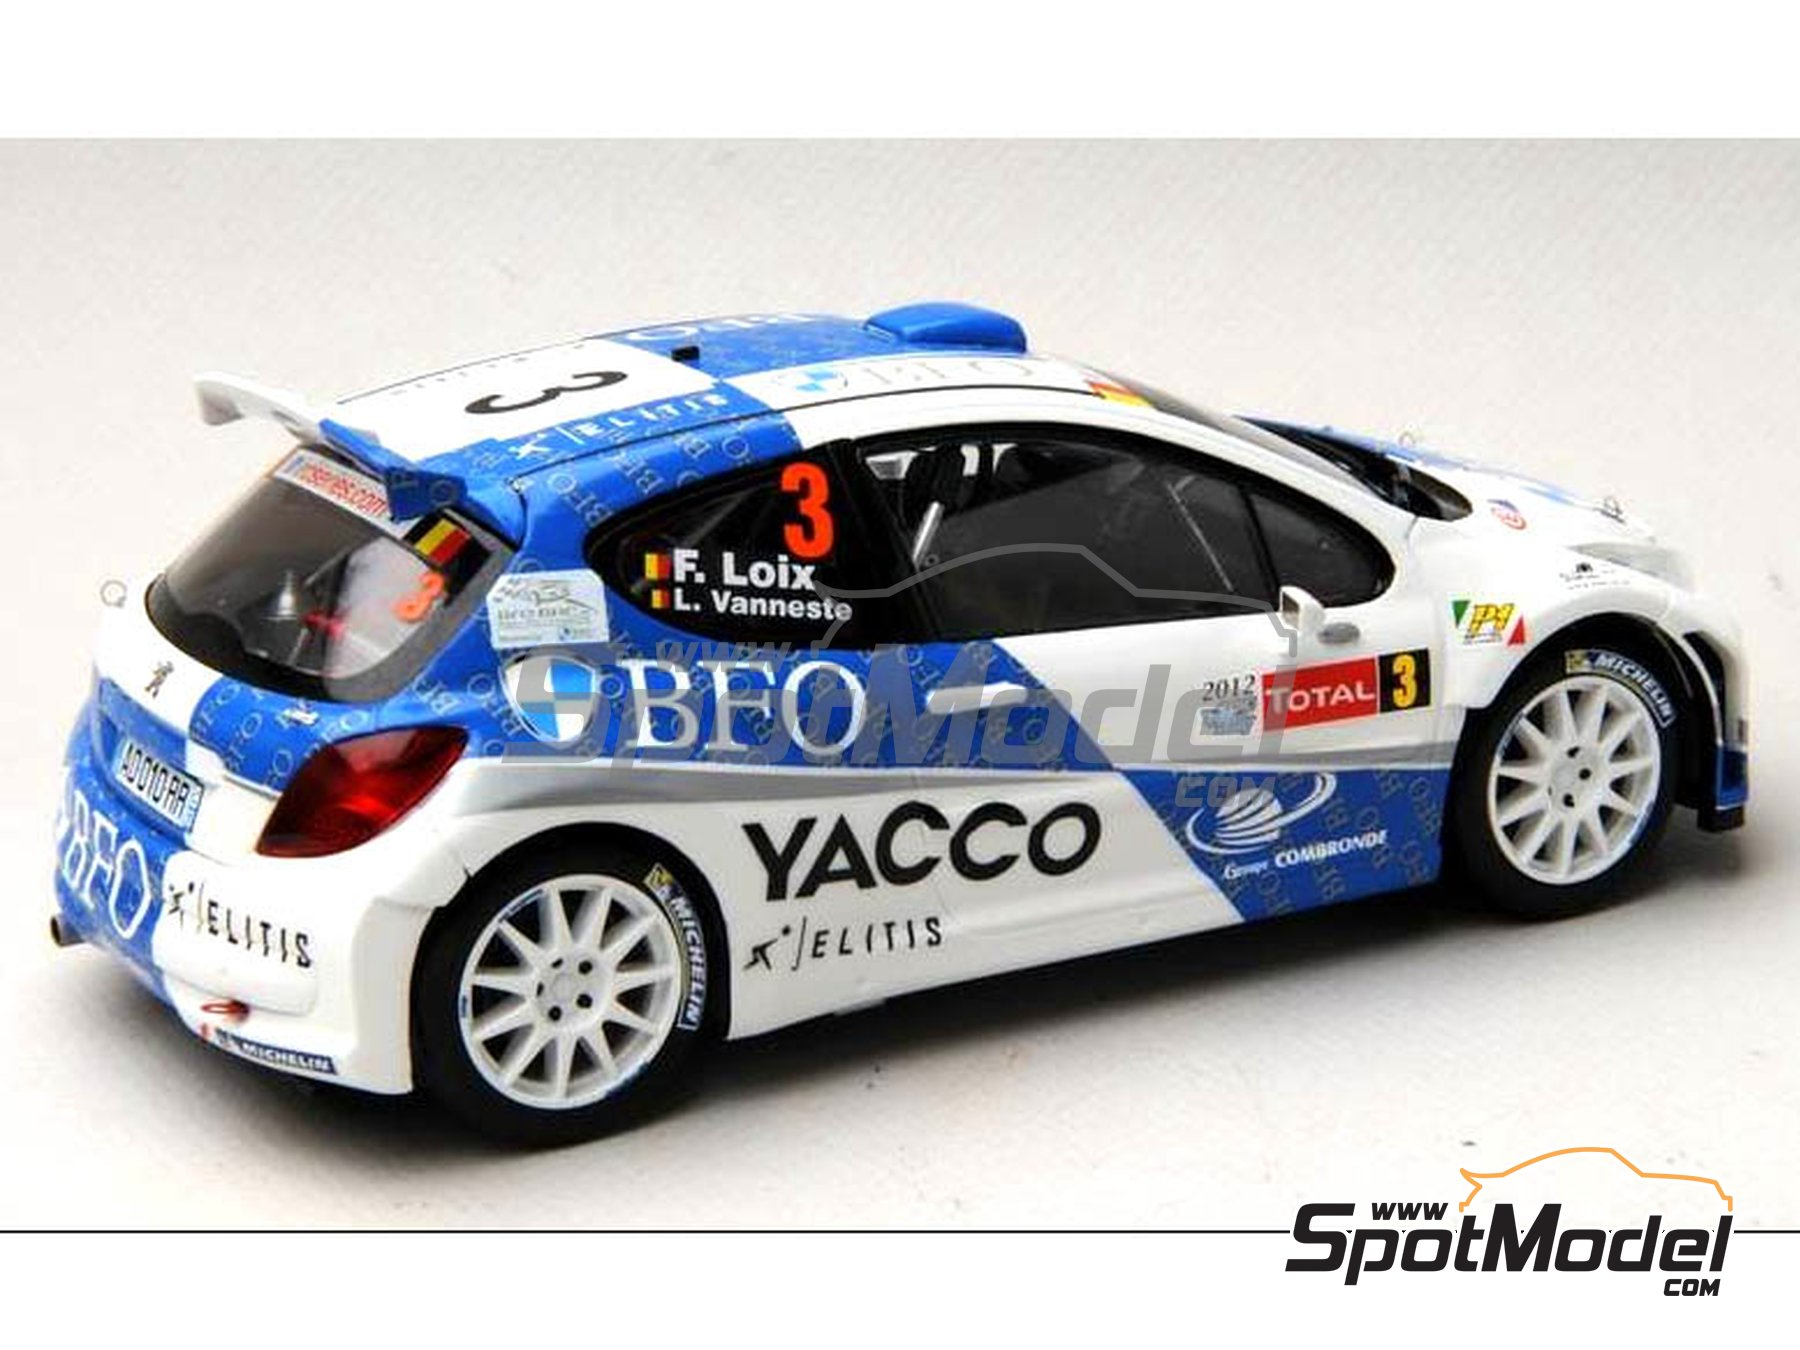 Image 13: Peugeot 207 S2000 BFO Yacco - Ypres Rally 2012 | Marking / livery in 1/24 scale manufactured by Renaissance Models (ref. TK24-338)